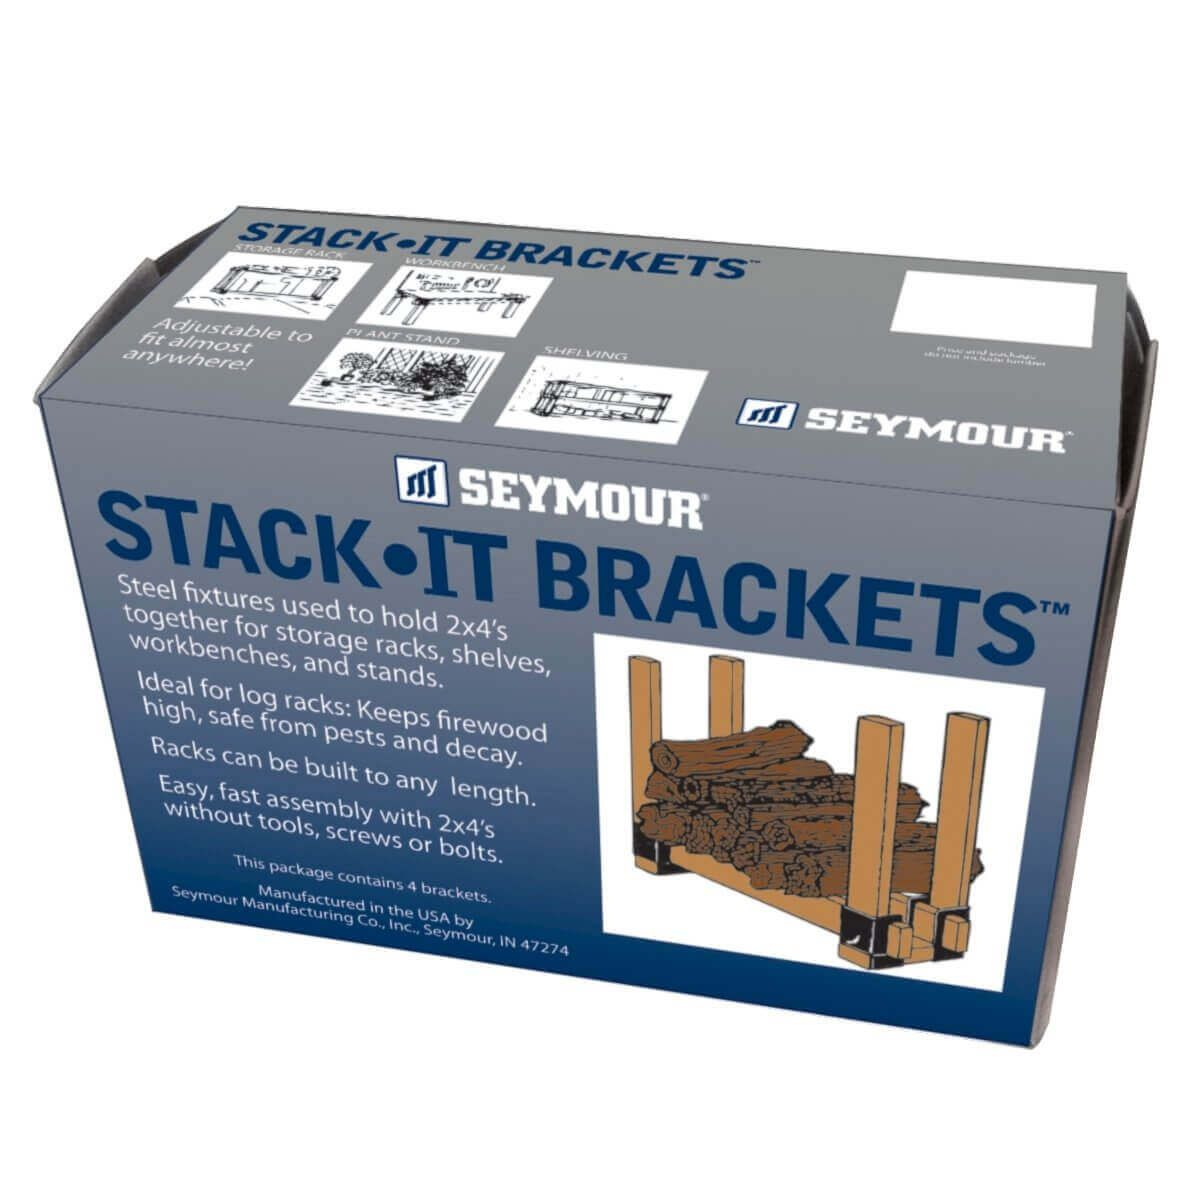 Seymour Stack-It-Brackets - Set of 4 Brackets